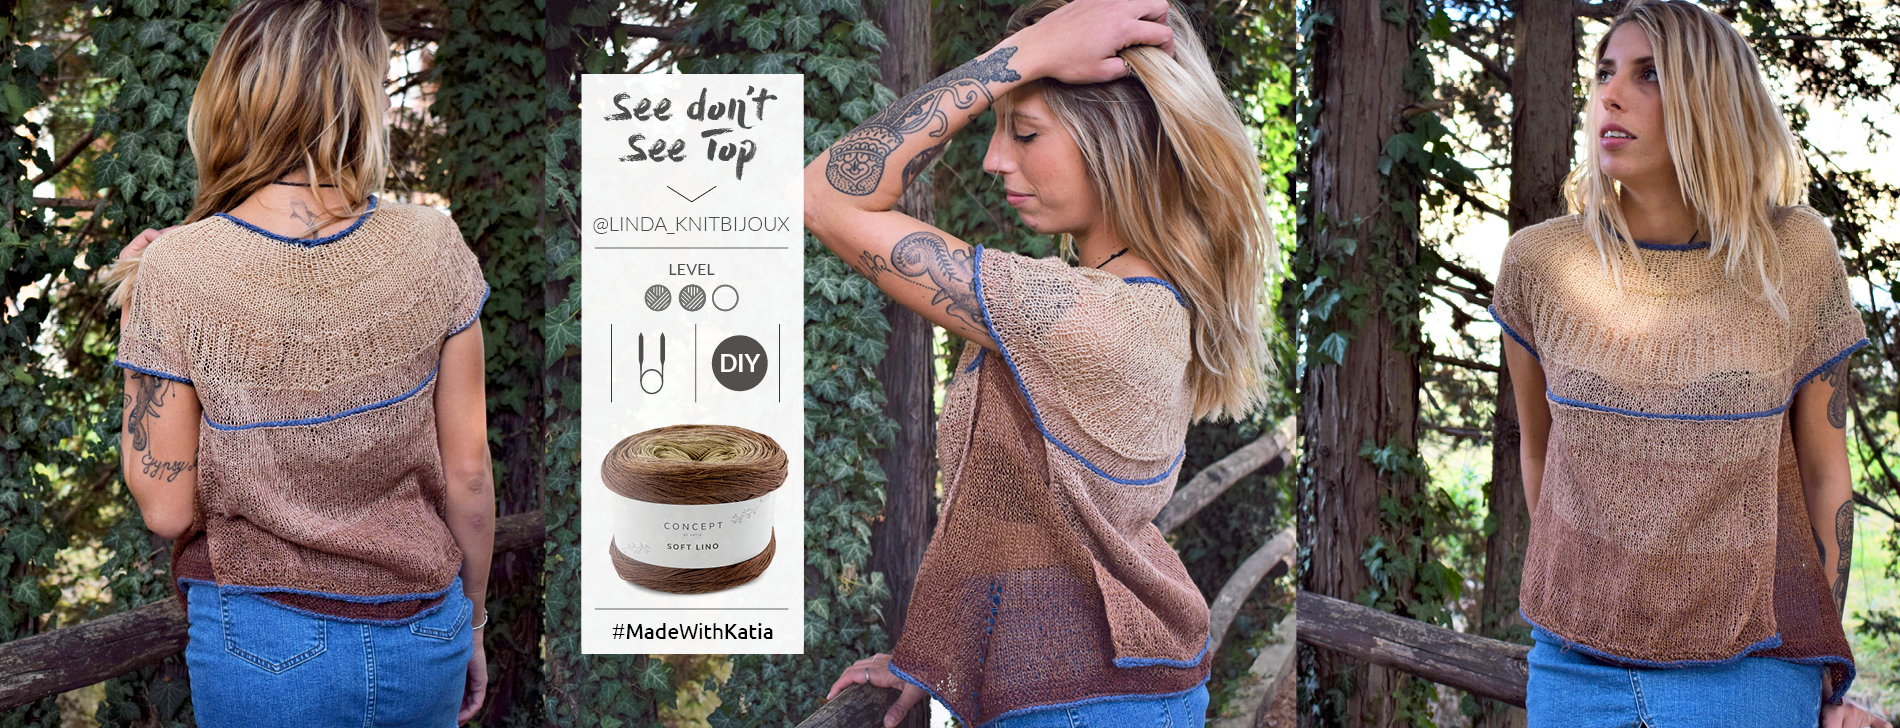 Top-See-don't-See-Linda-Allegra